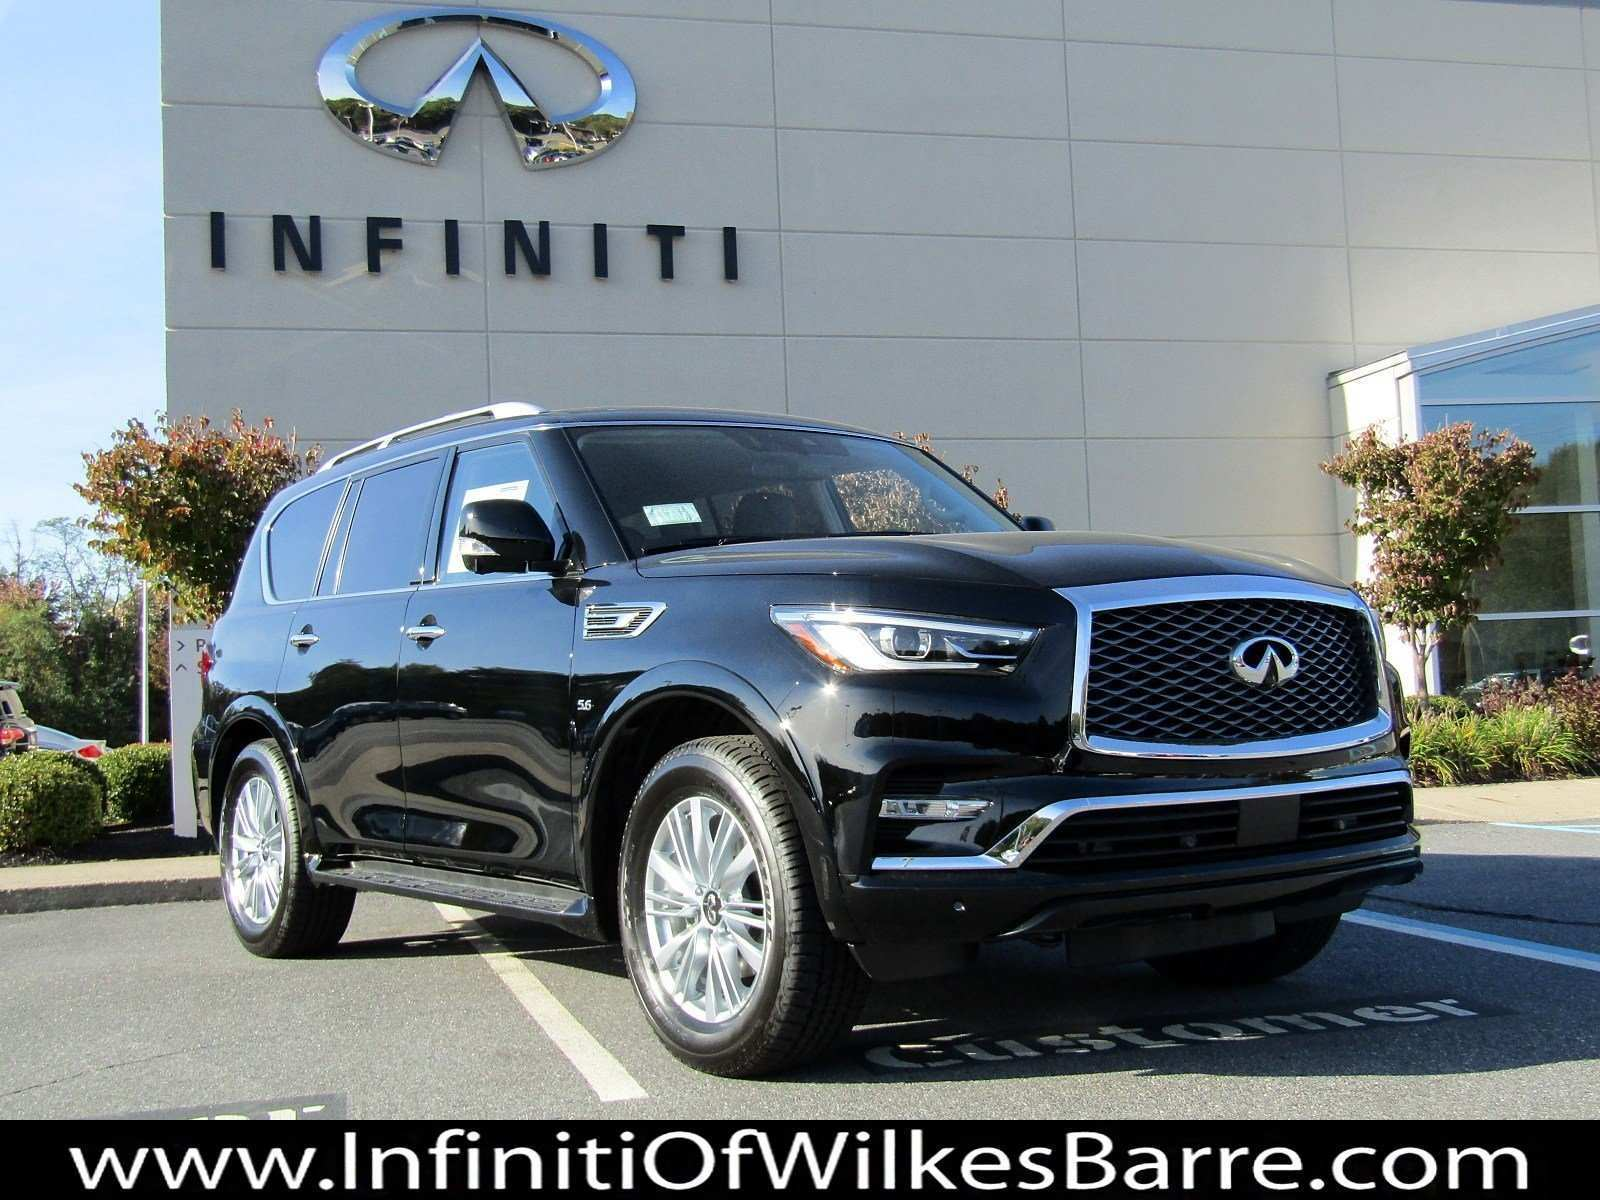 88 The Best 2019 Infiniti Qx80 Suv Price And Review